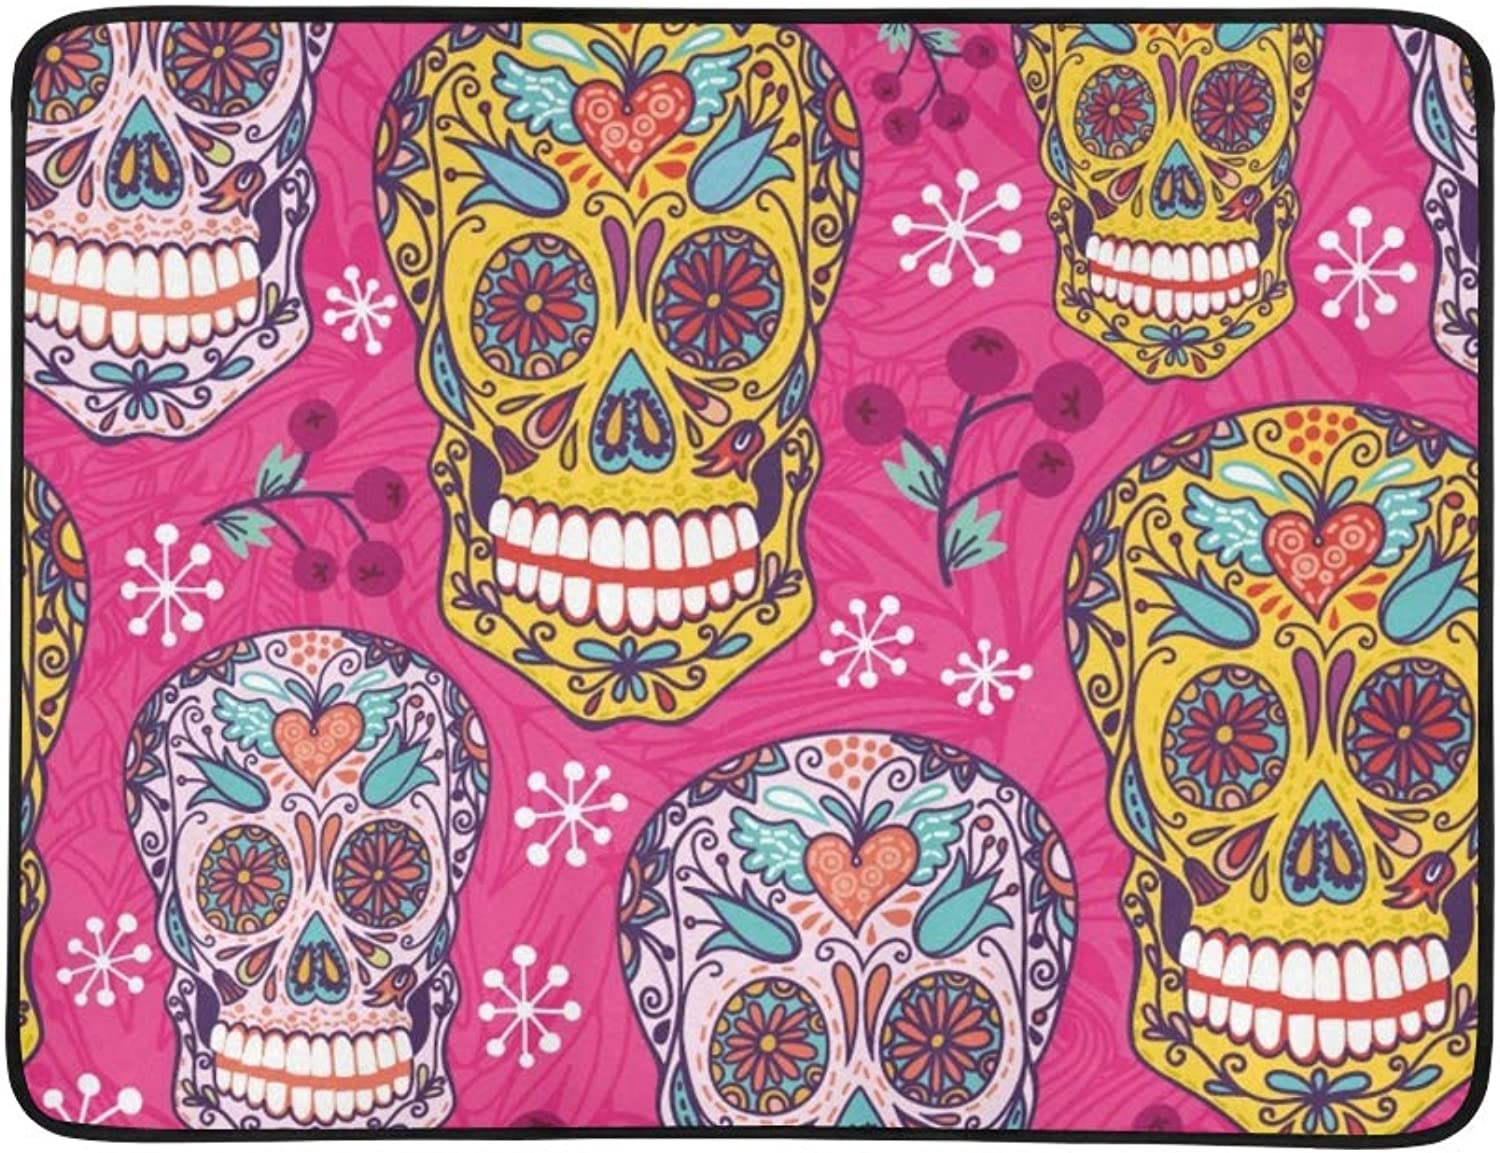 Pink Bright Mexican Sugar Skull Portable and Foldable Blanket Mat 60x78 Inch Handy Mat for Camping Picnic Beach Indoor Outdoor Travel